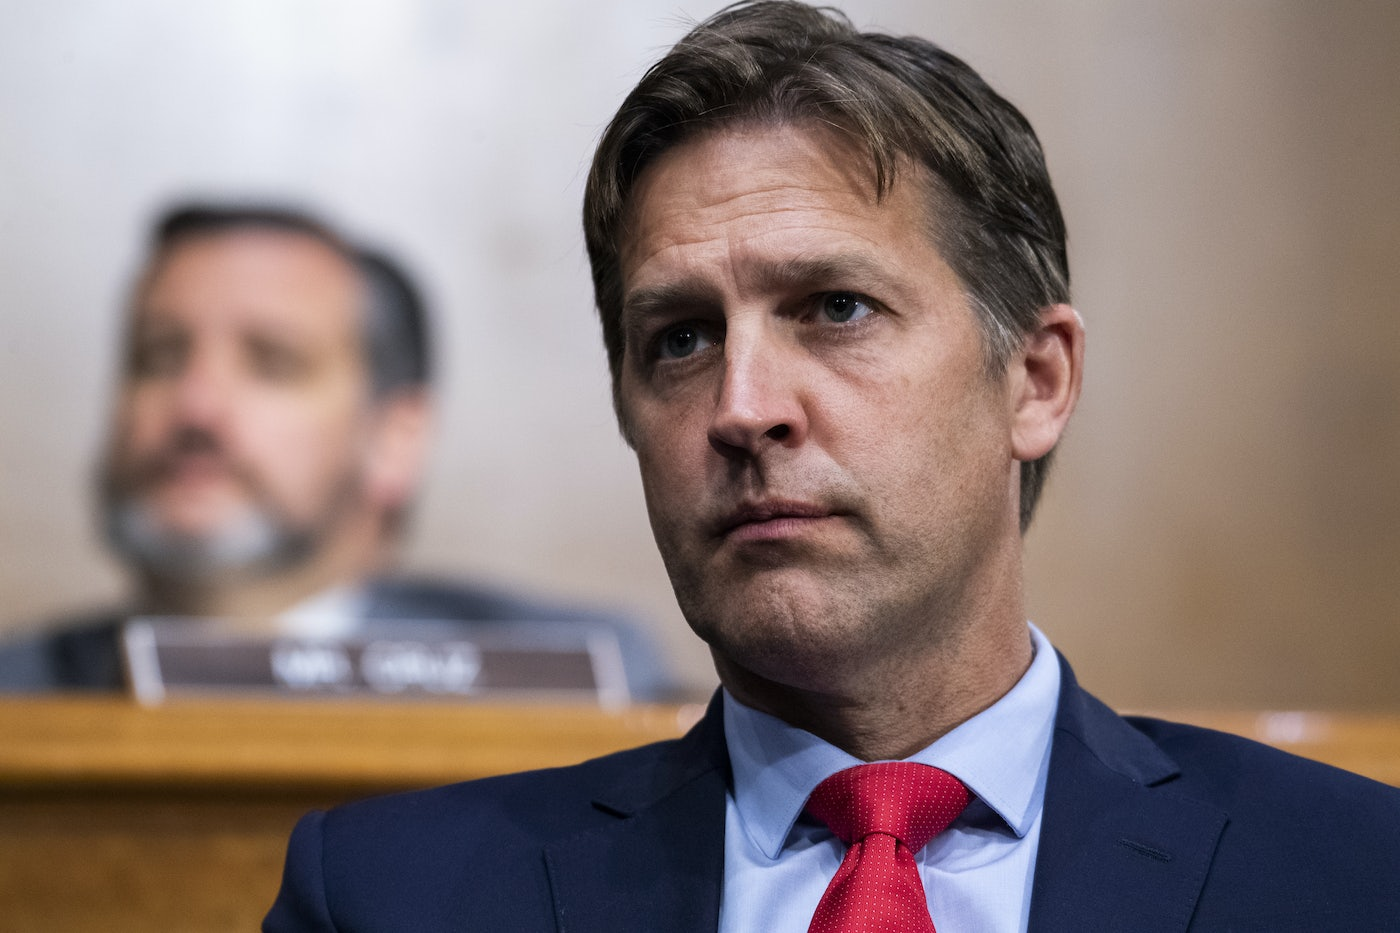 Senator Ben Sasse at a Judiciary Committee hearing